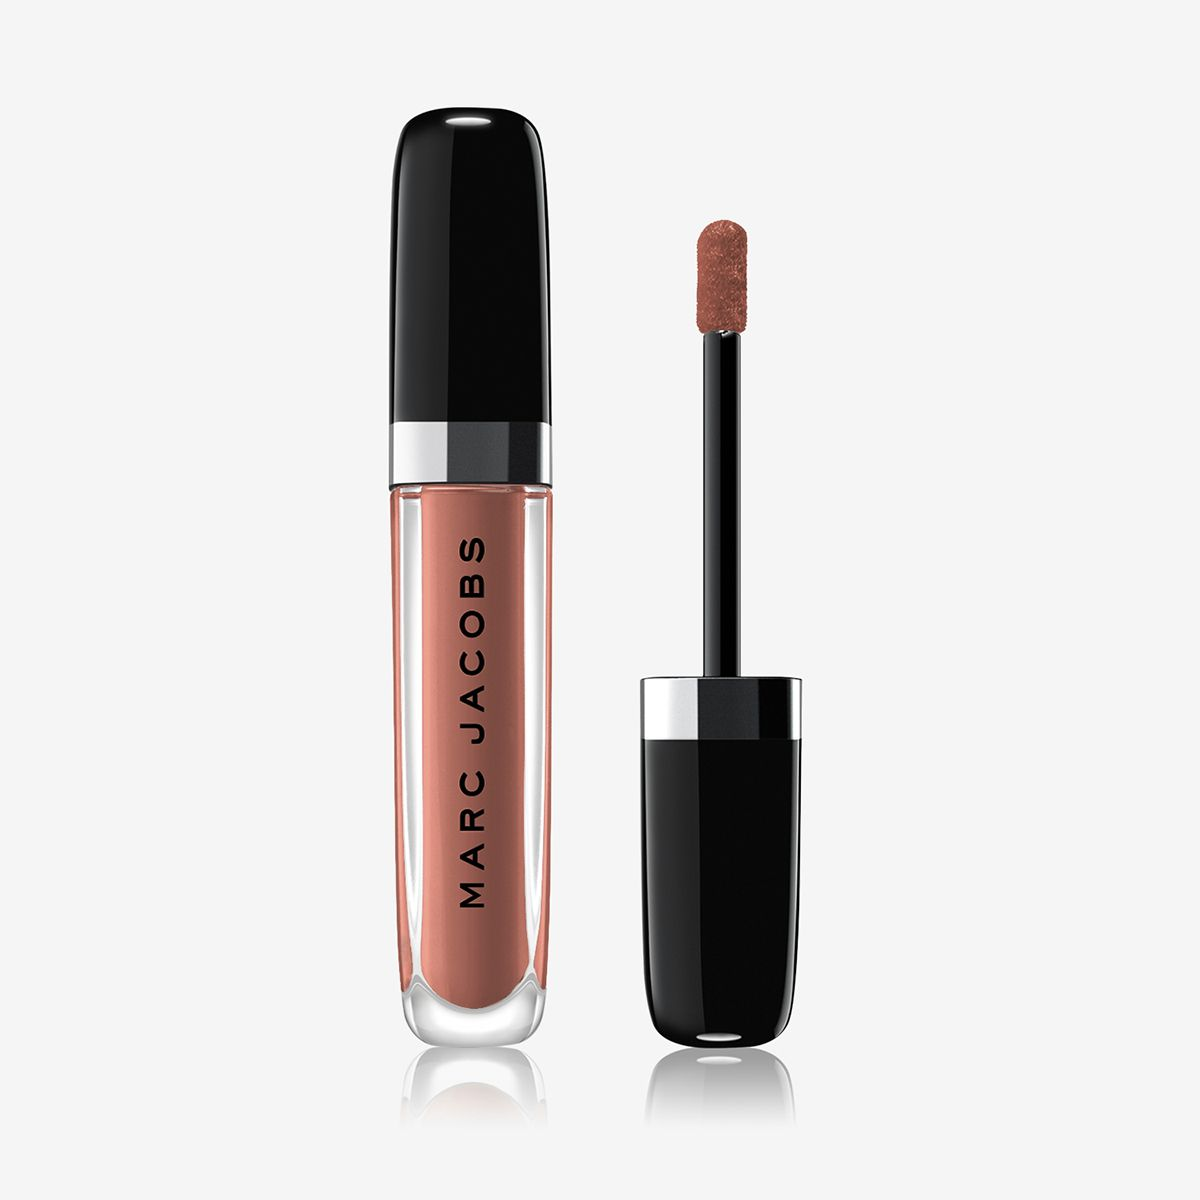 We Tested All The On-Sale Marc Jacobs Beauty Products—These Were the Standouts 12